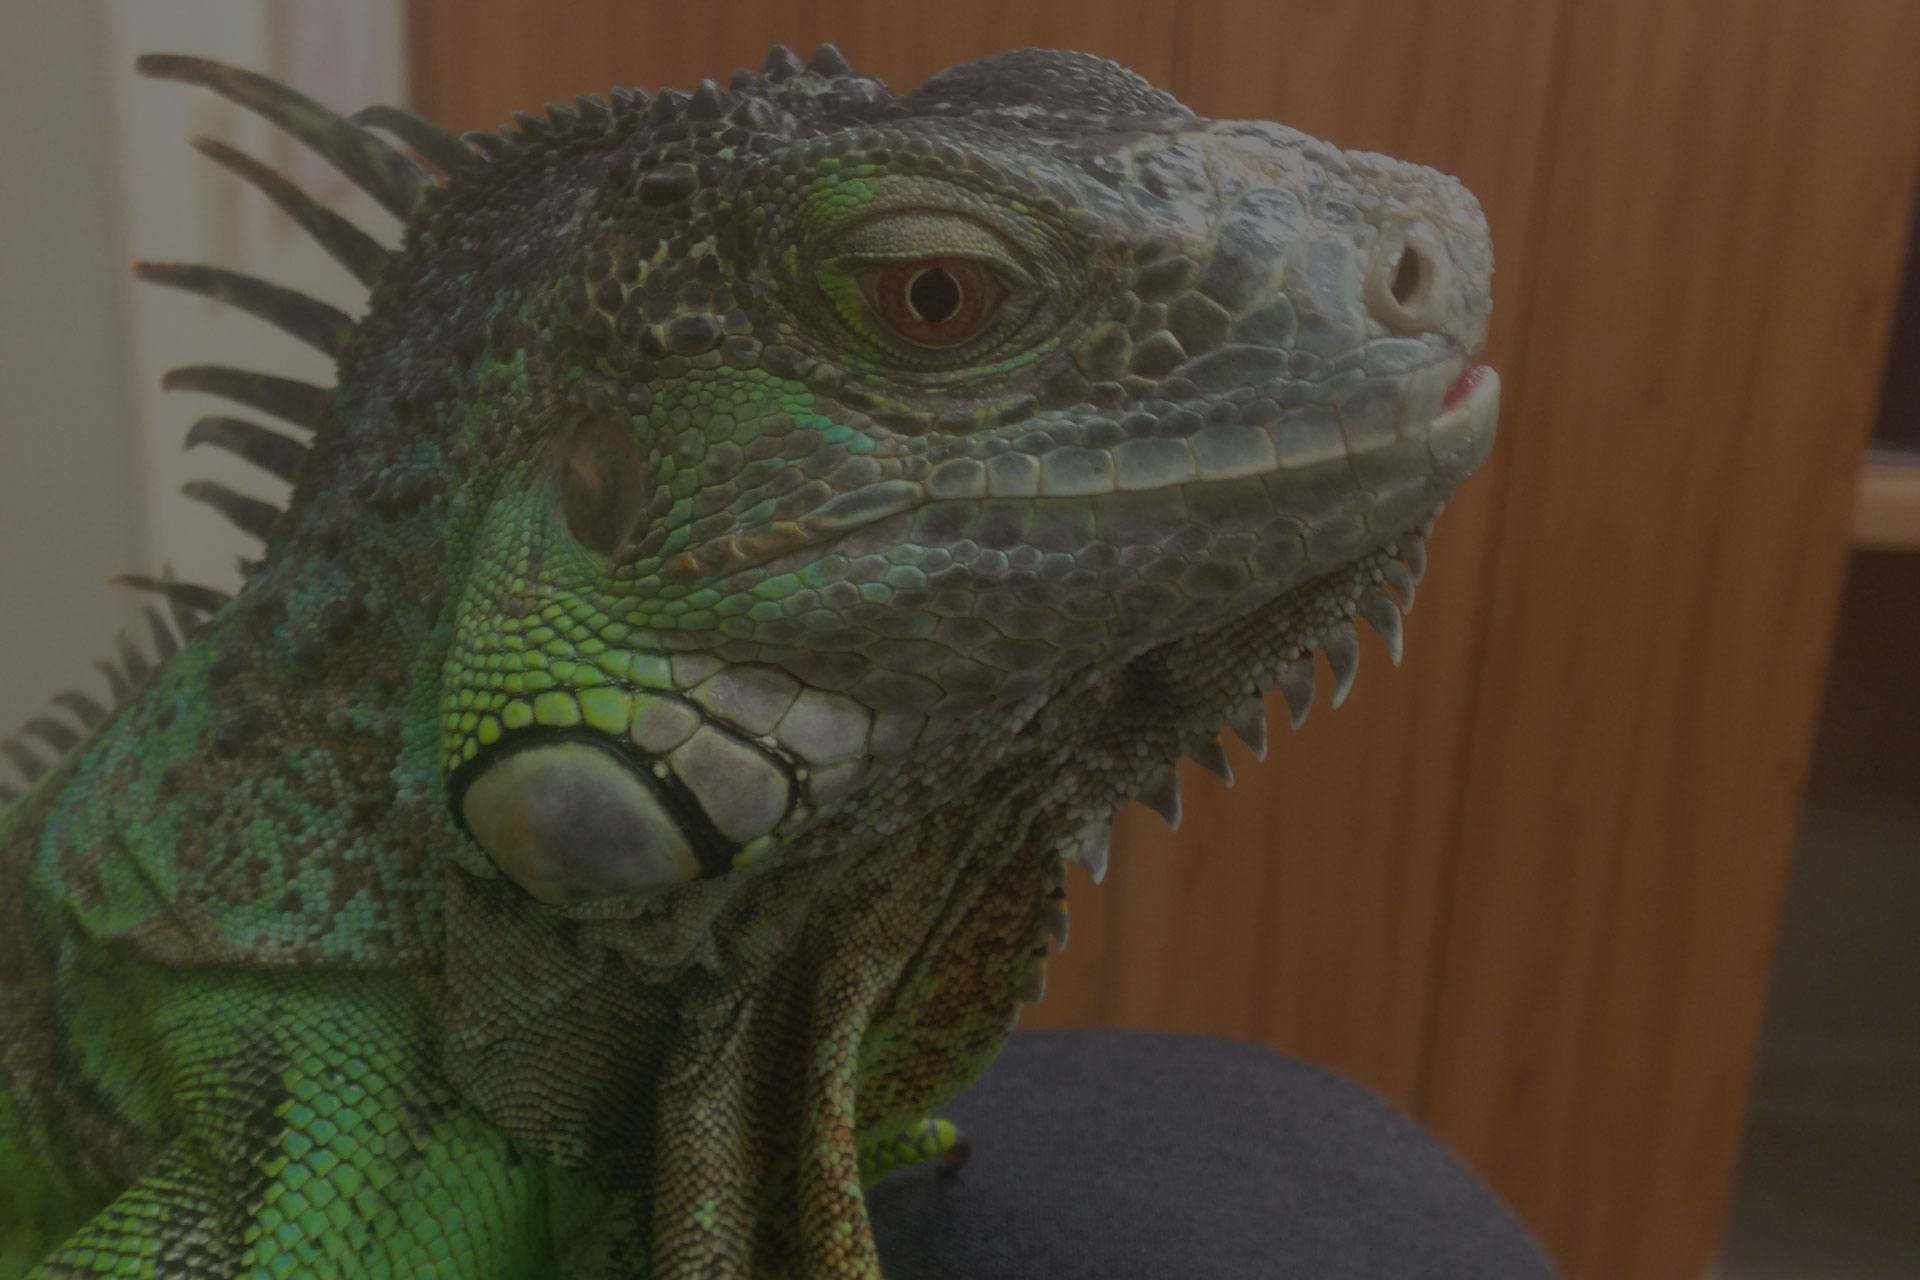 Green iguana close up